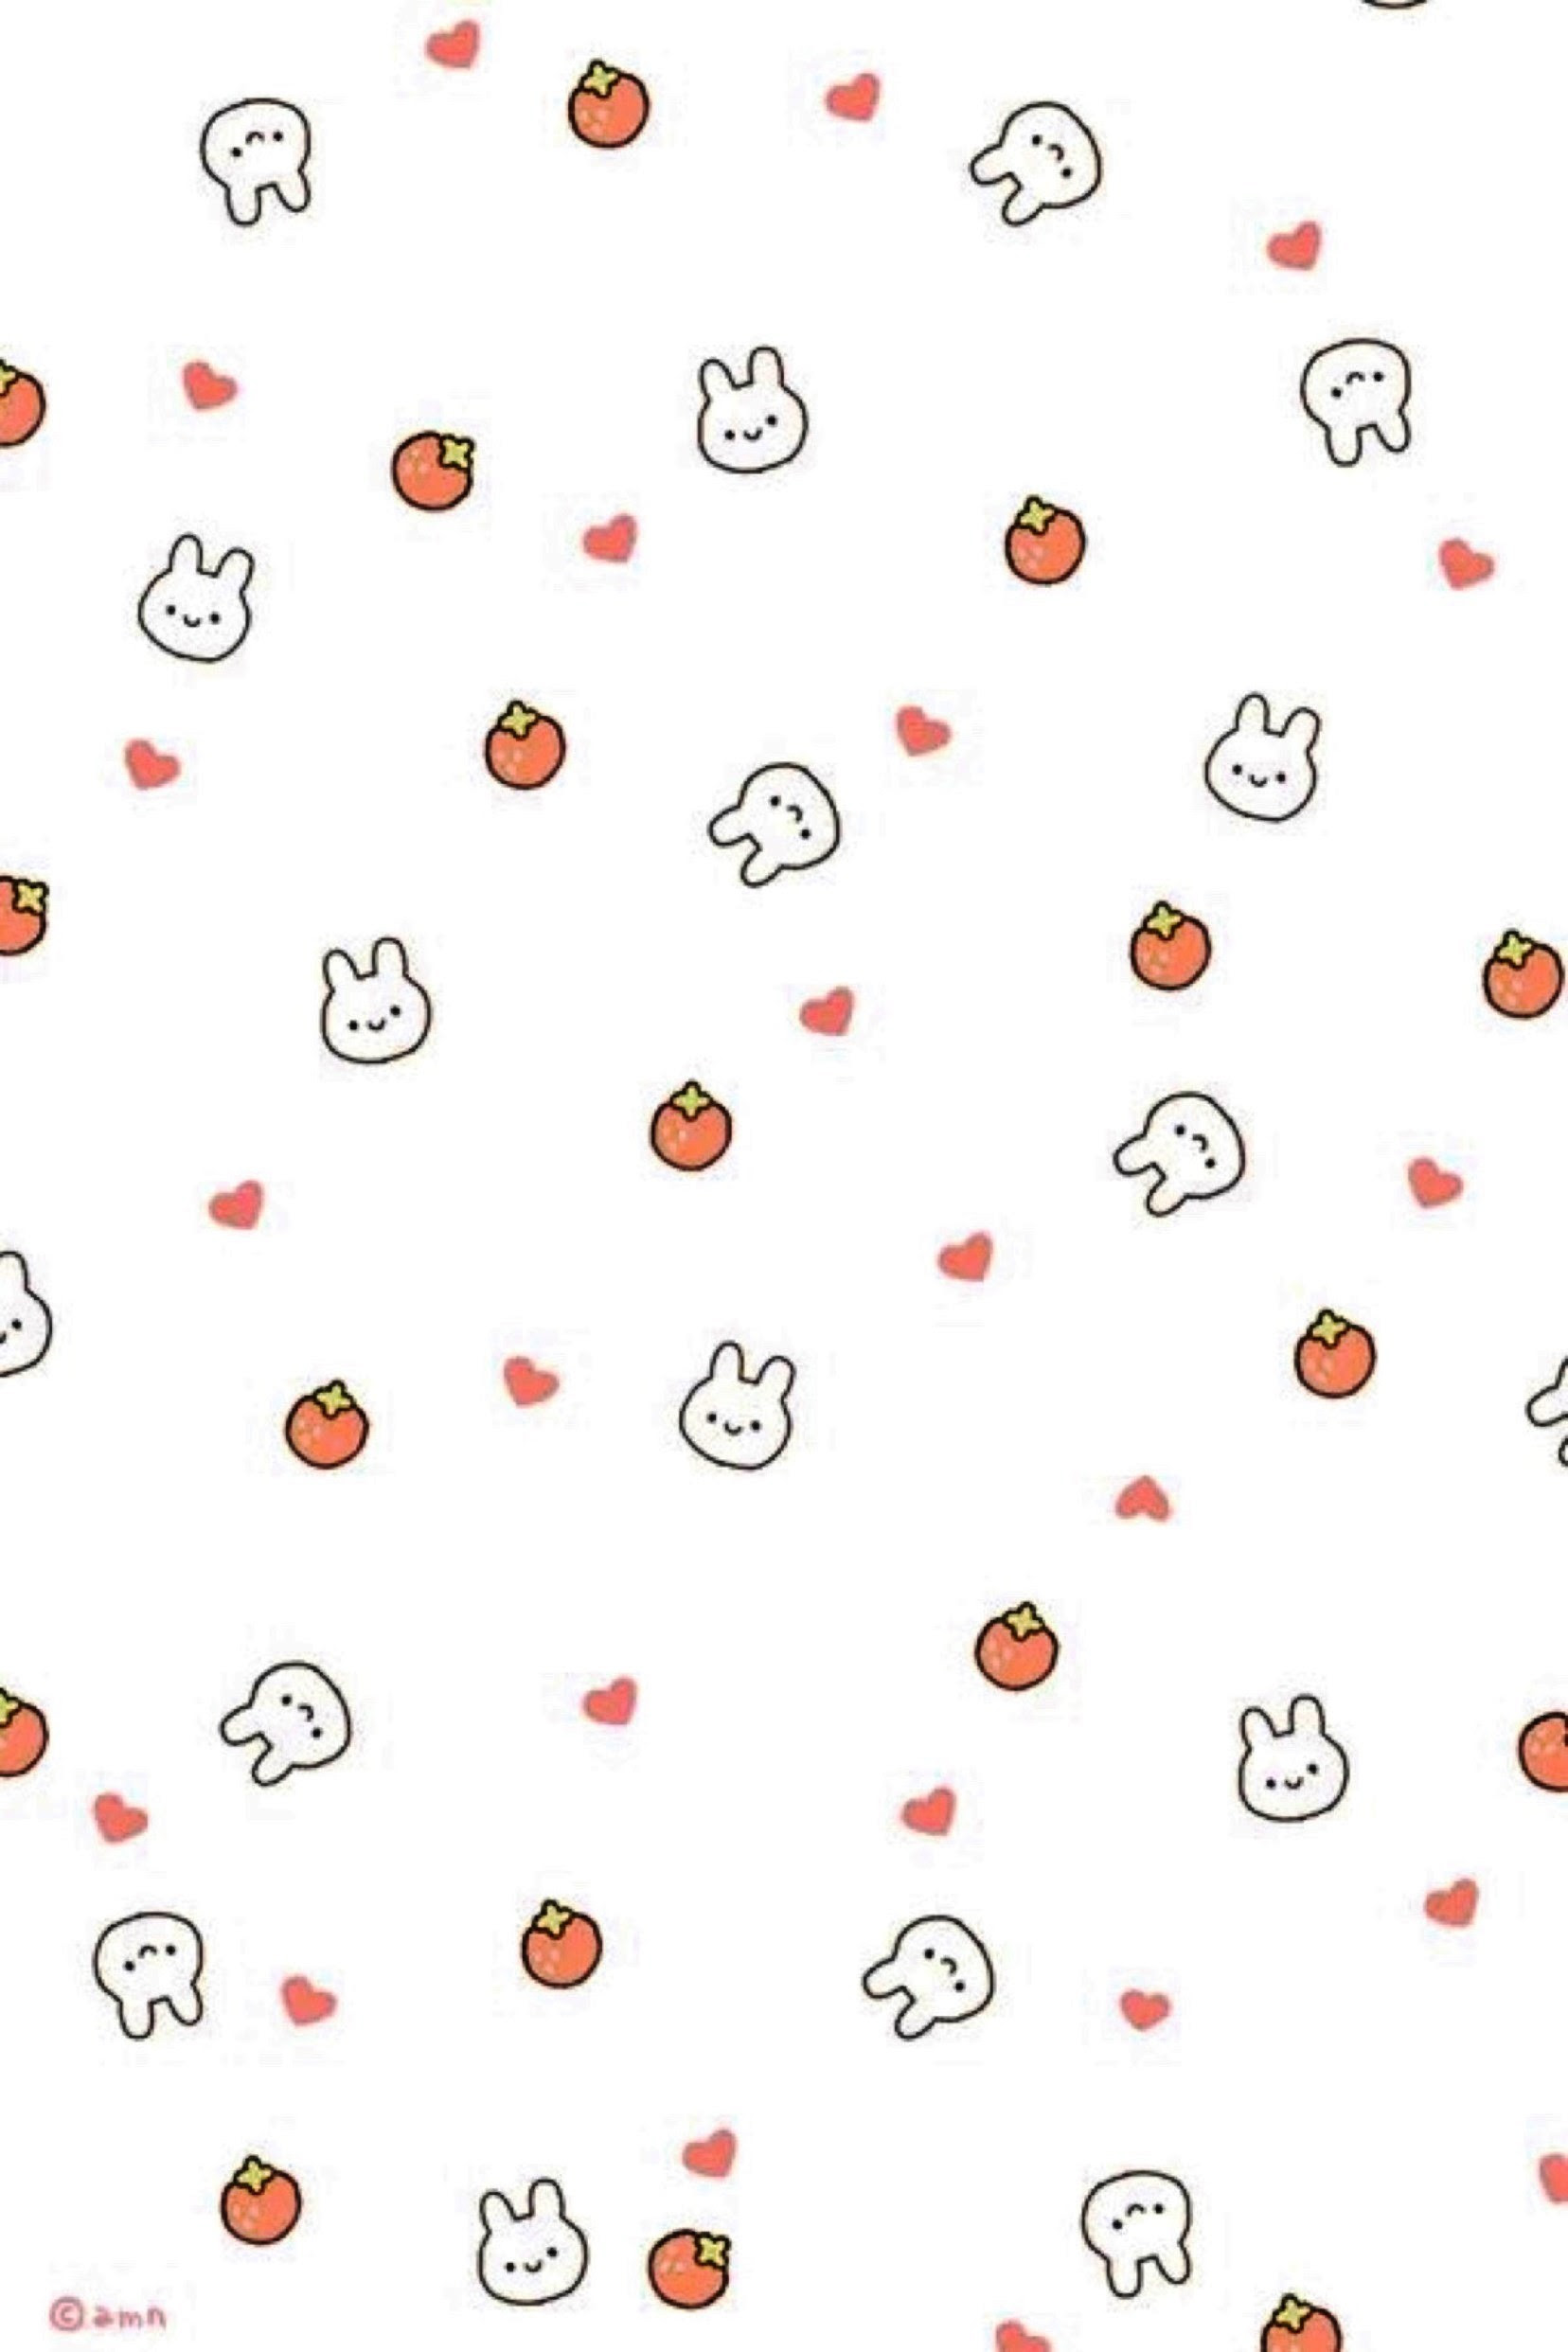 Cute Wallpapers for Phone Backgrounds 71+ images